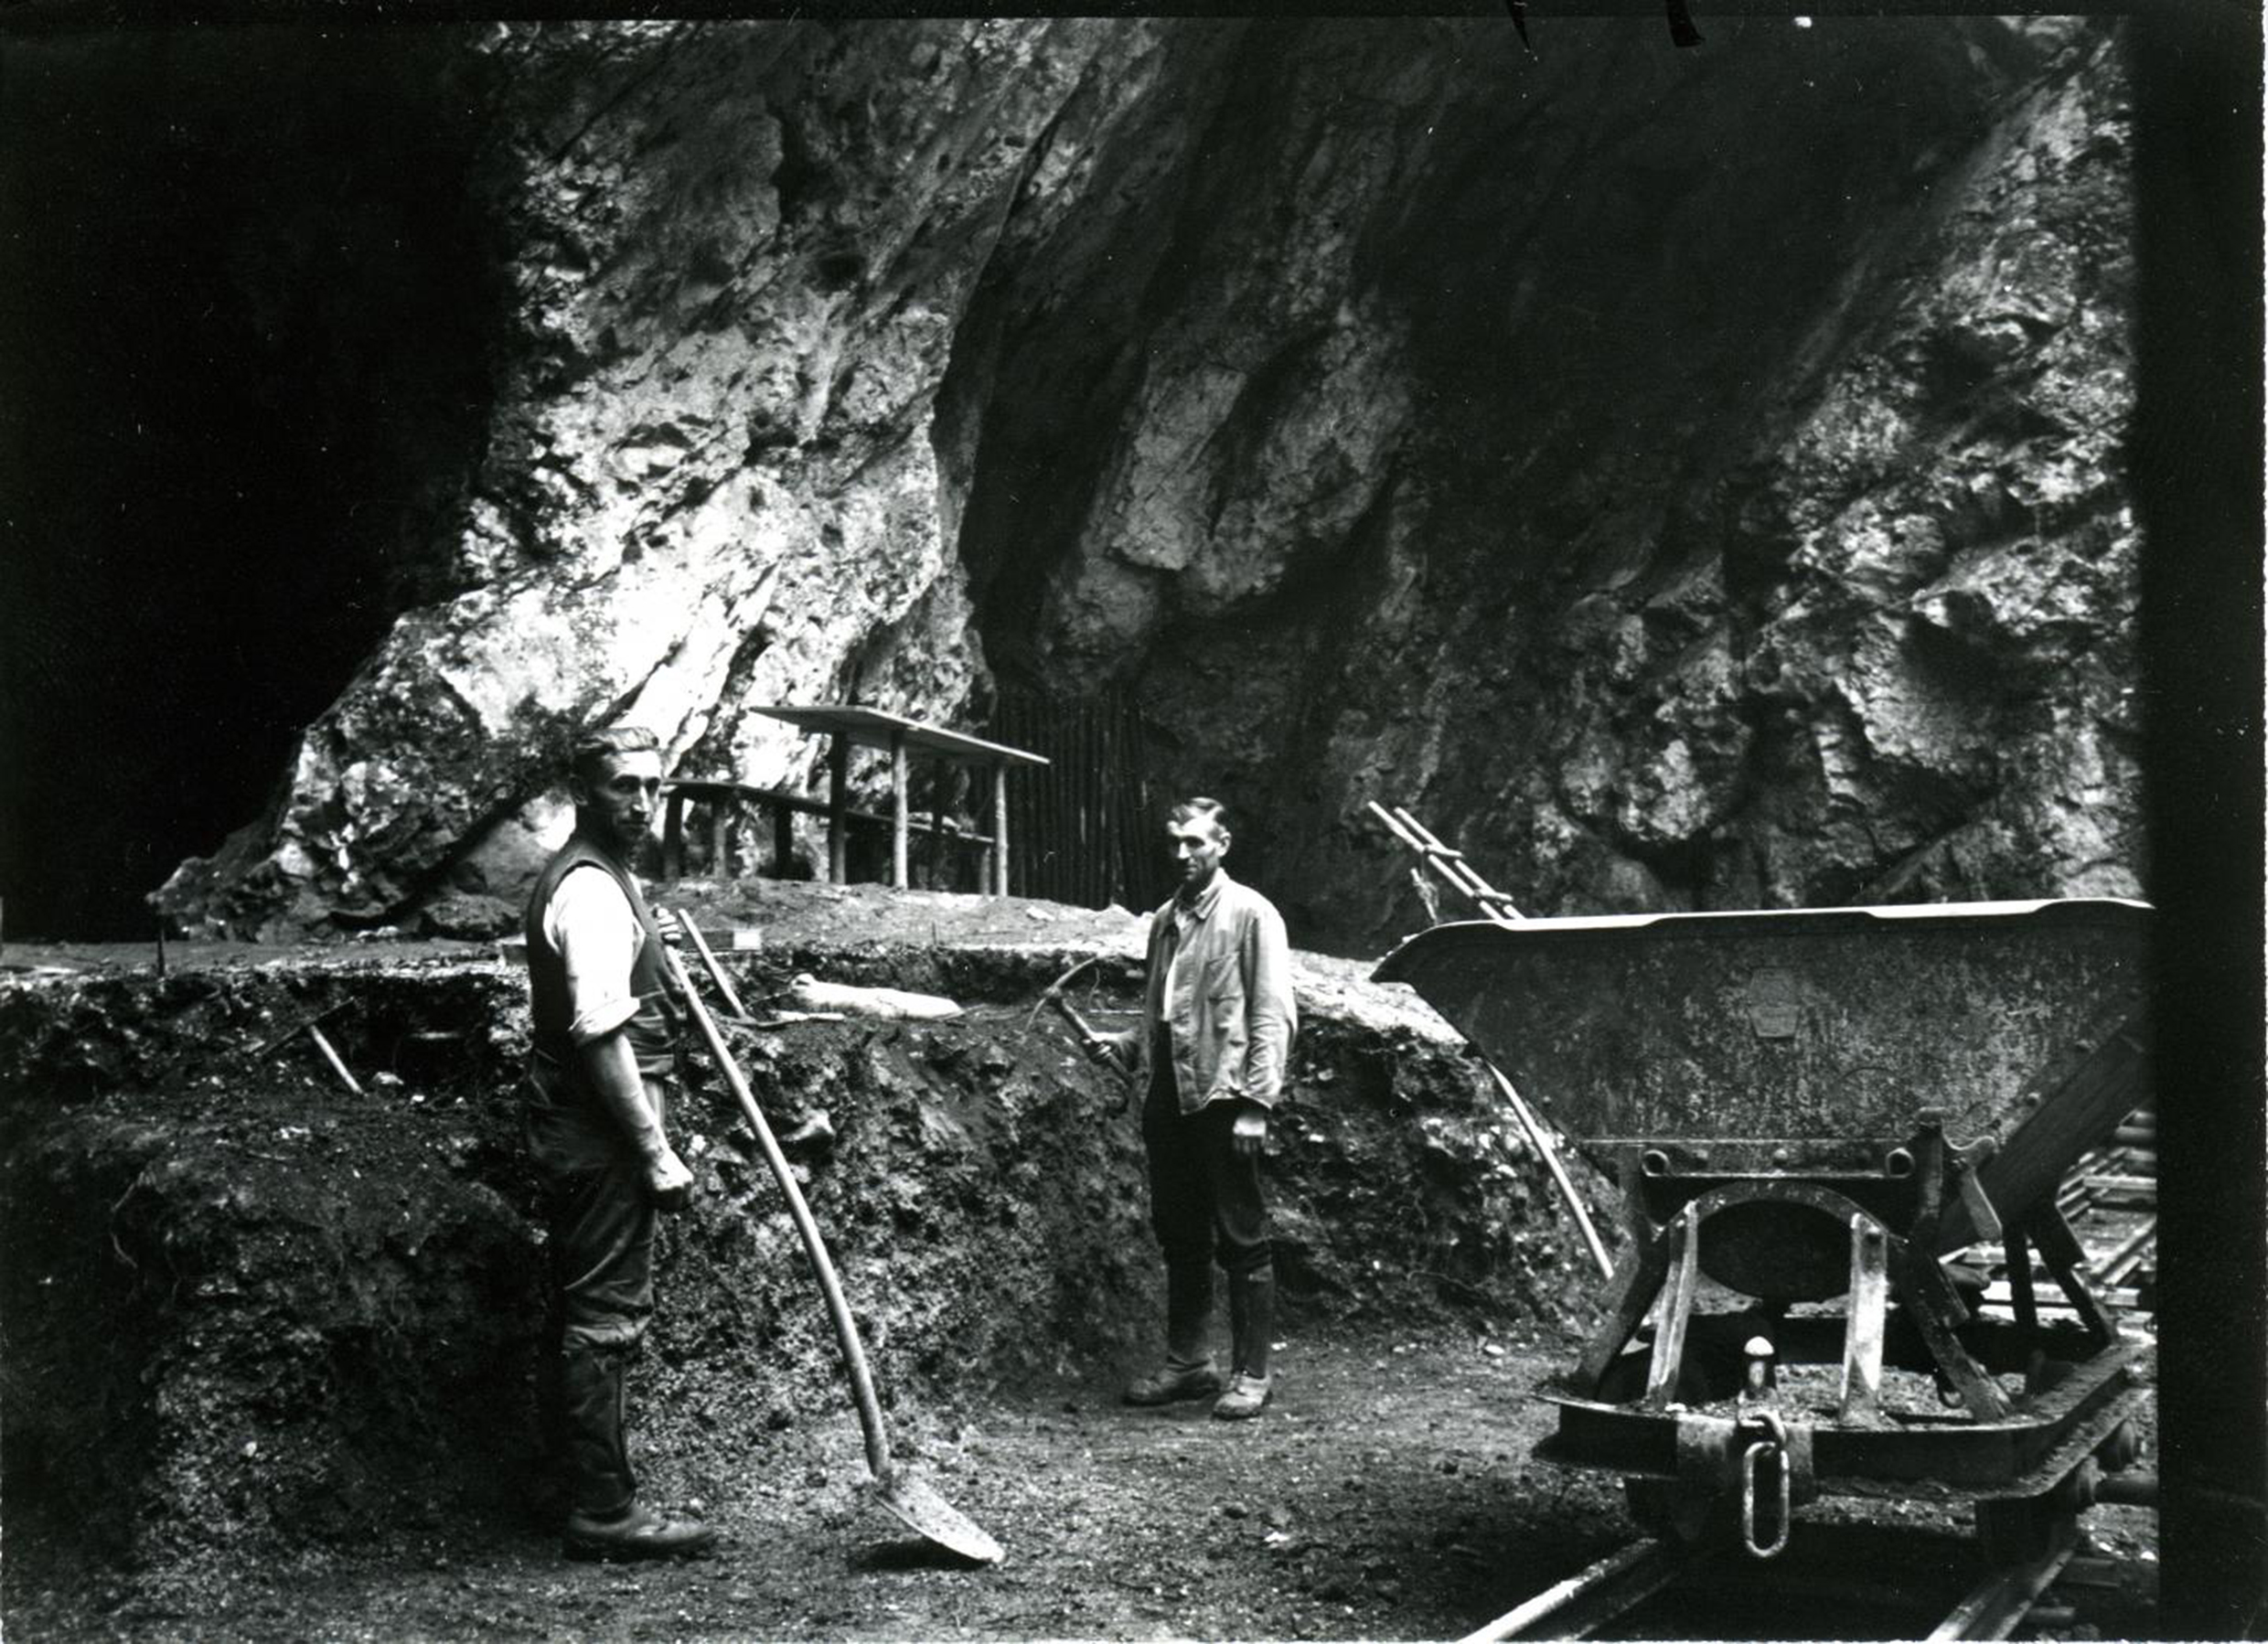 The cave in southwestern Germany in 1937 a 124,000 year old Neanderthal femur was discovered.